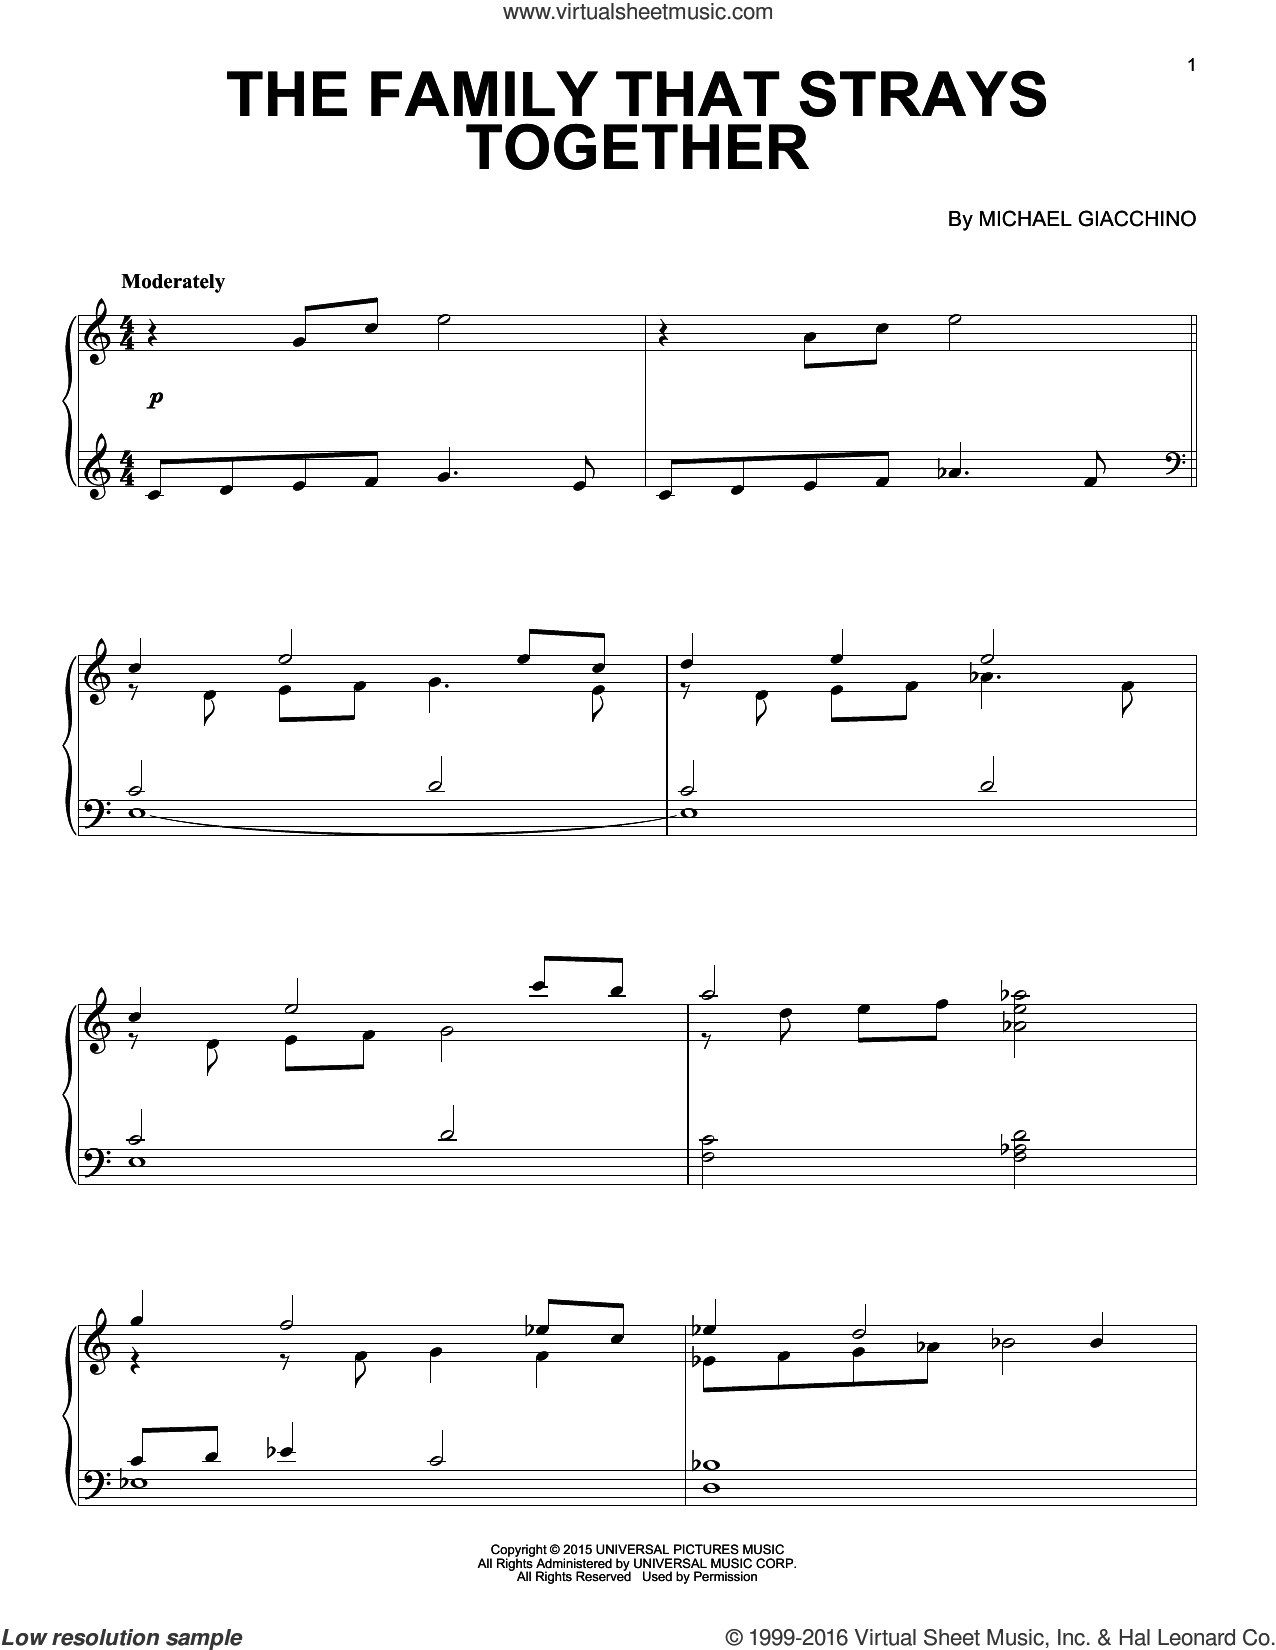 The Family That Strays Together from Jurassic World sheet music for piano solo by Michael Giacchino, classical score, intermediate